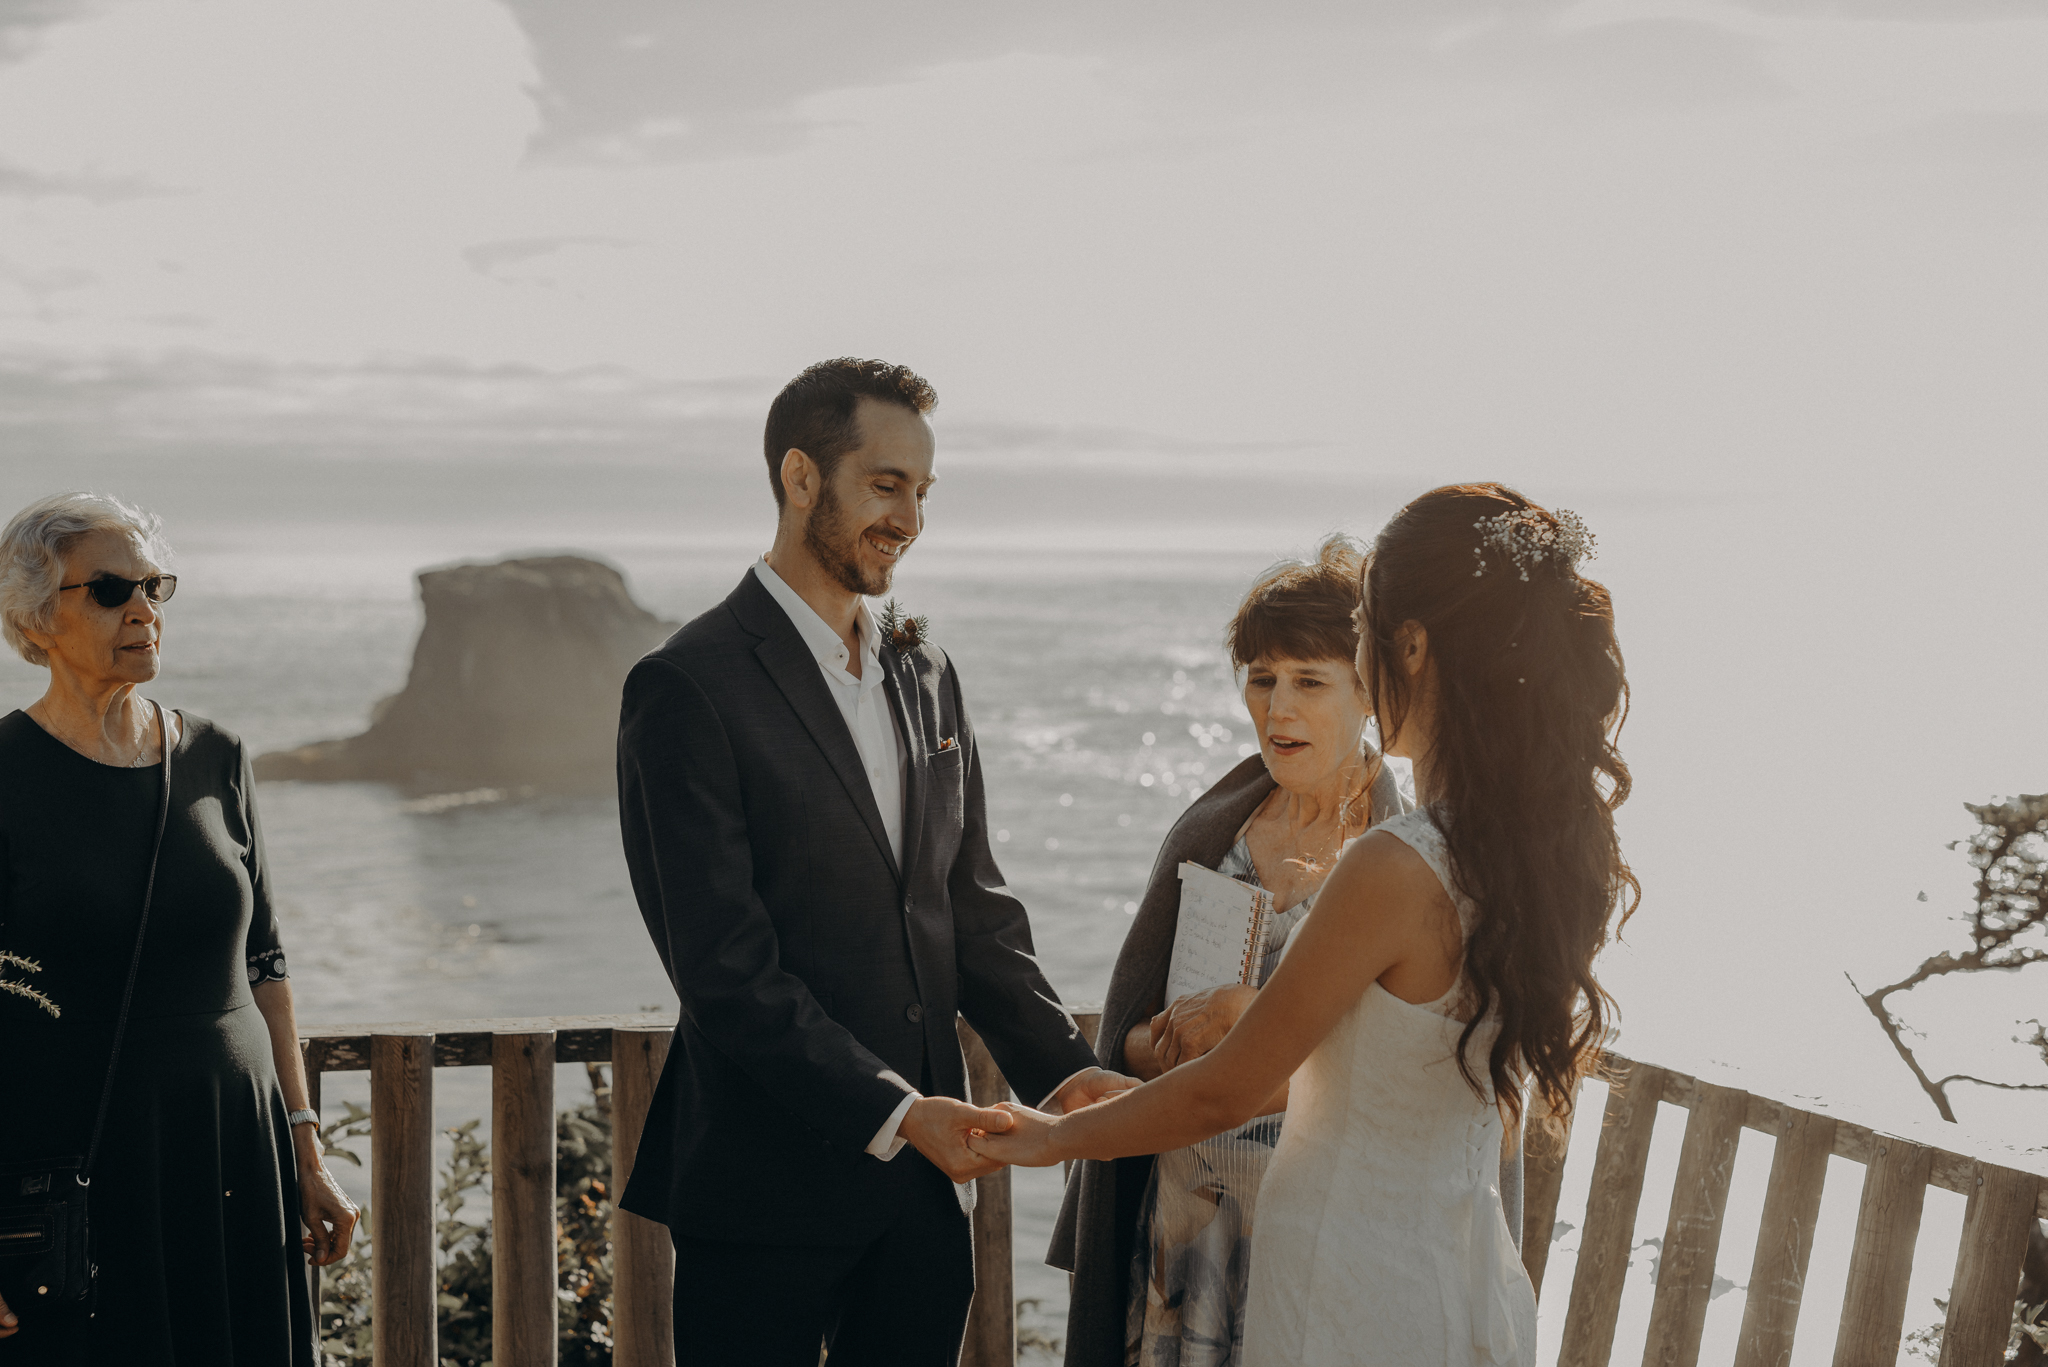 Isaiah + Taylor Photography - Cape Flattery Elopement, Olympia National Forest Wedding Photographer-044.jpg